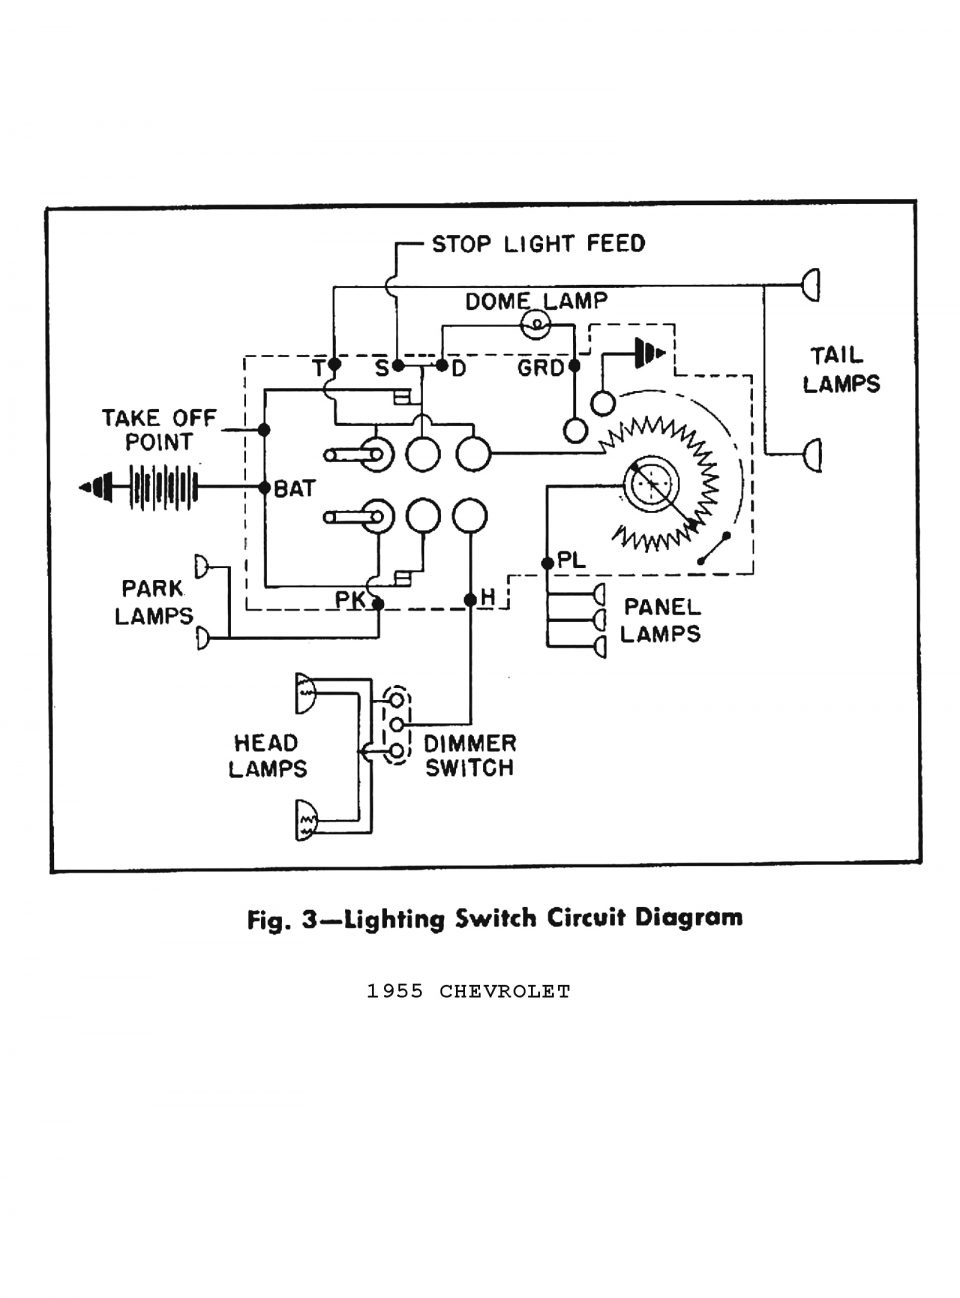 emergency ballast wiring diagrams for electrical emergency ballast wiring diagram for two